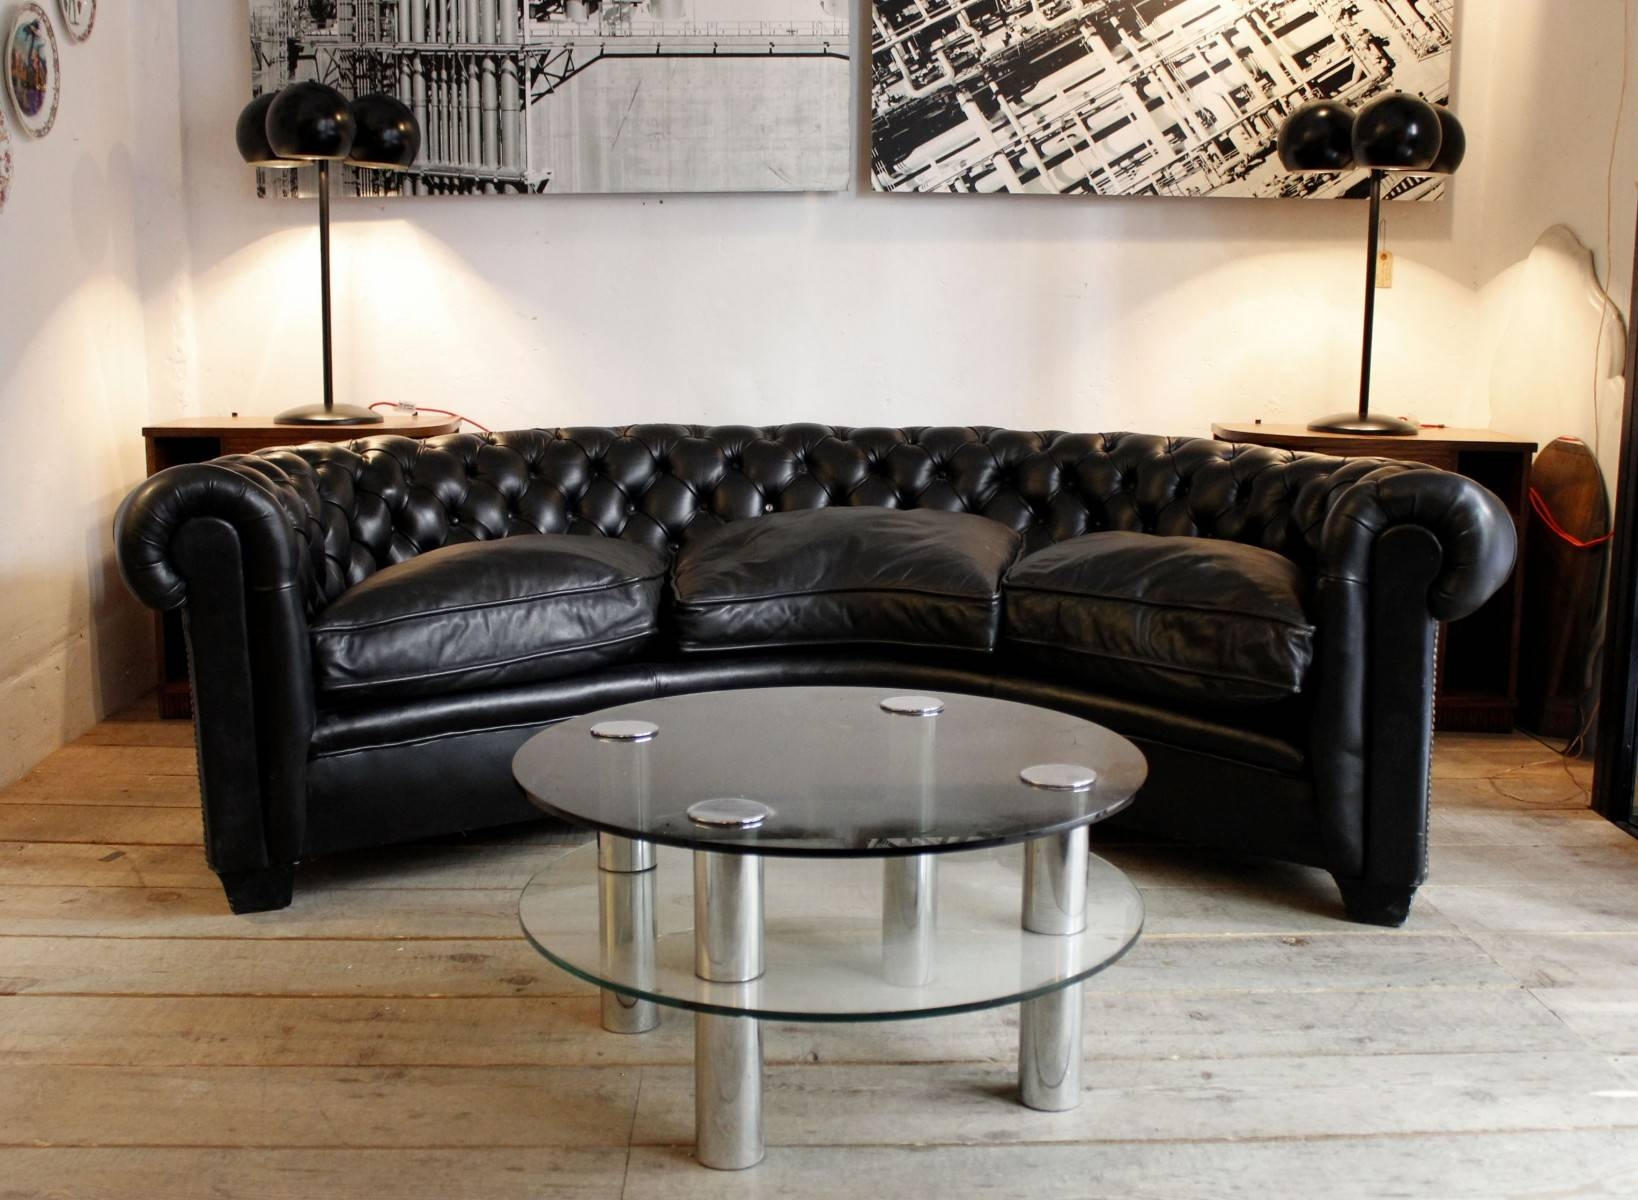 Furniture: Cozy Leather Chesterfield Sofa For Living Room Design for Chesterfield Black Sofas (Image 13 of 30)